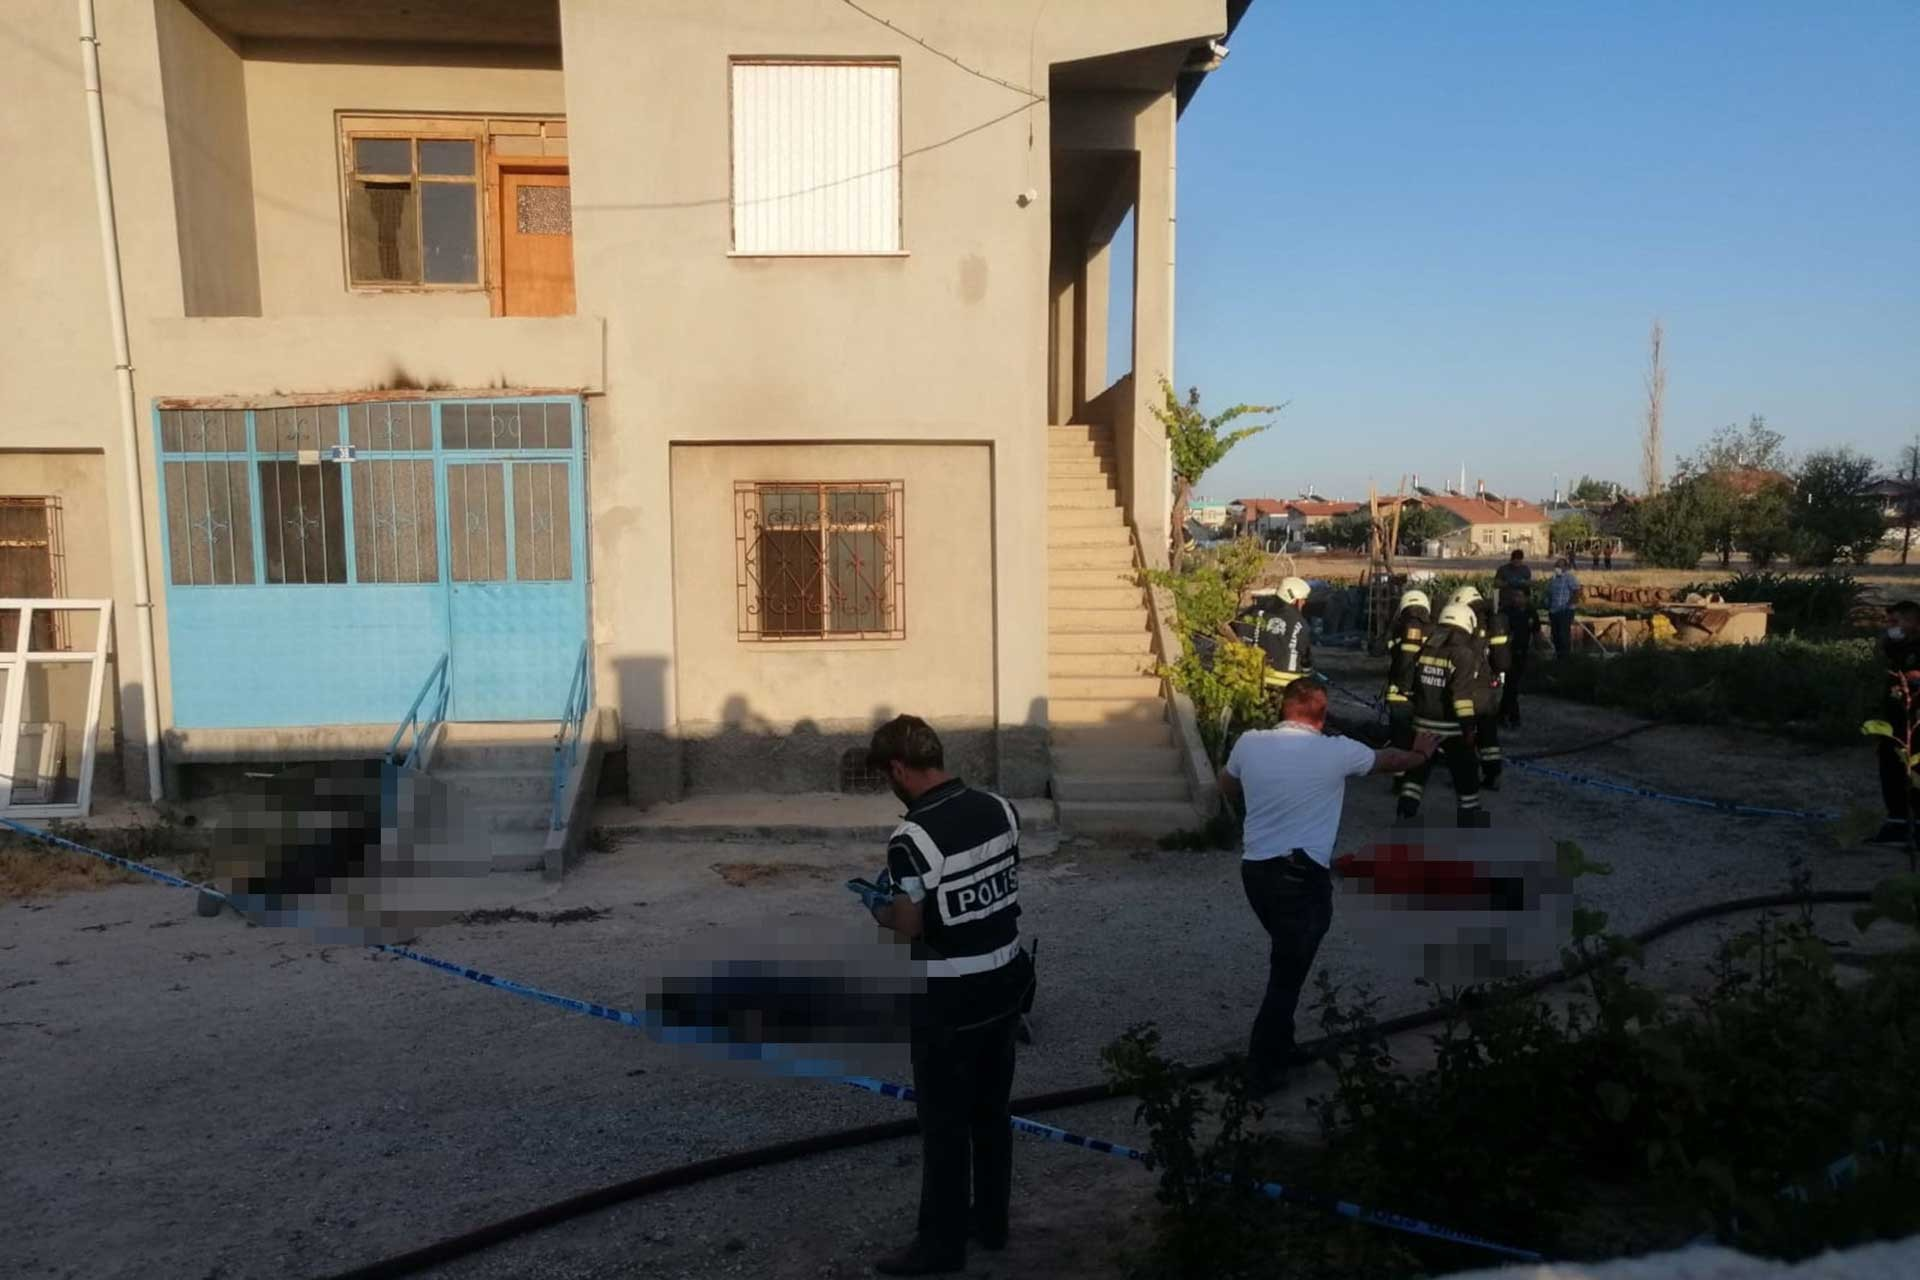 7 Kurds from the same family brutally killed in a racist attack at their home